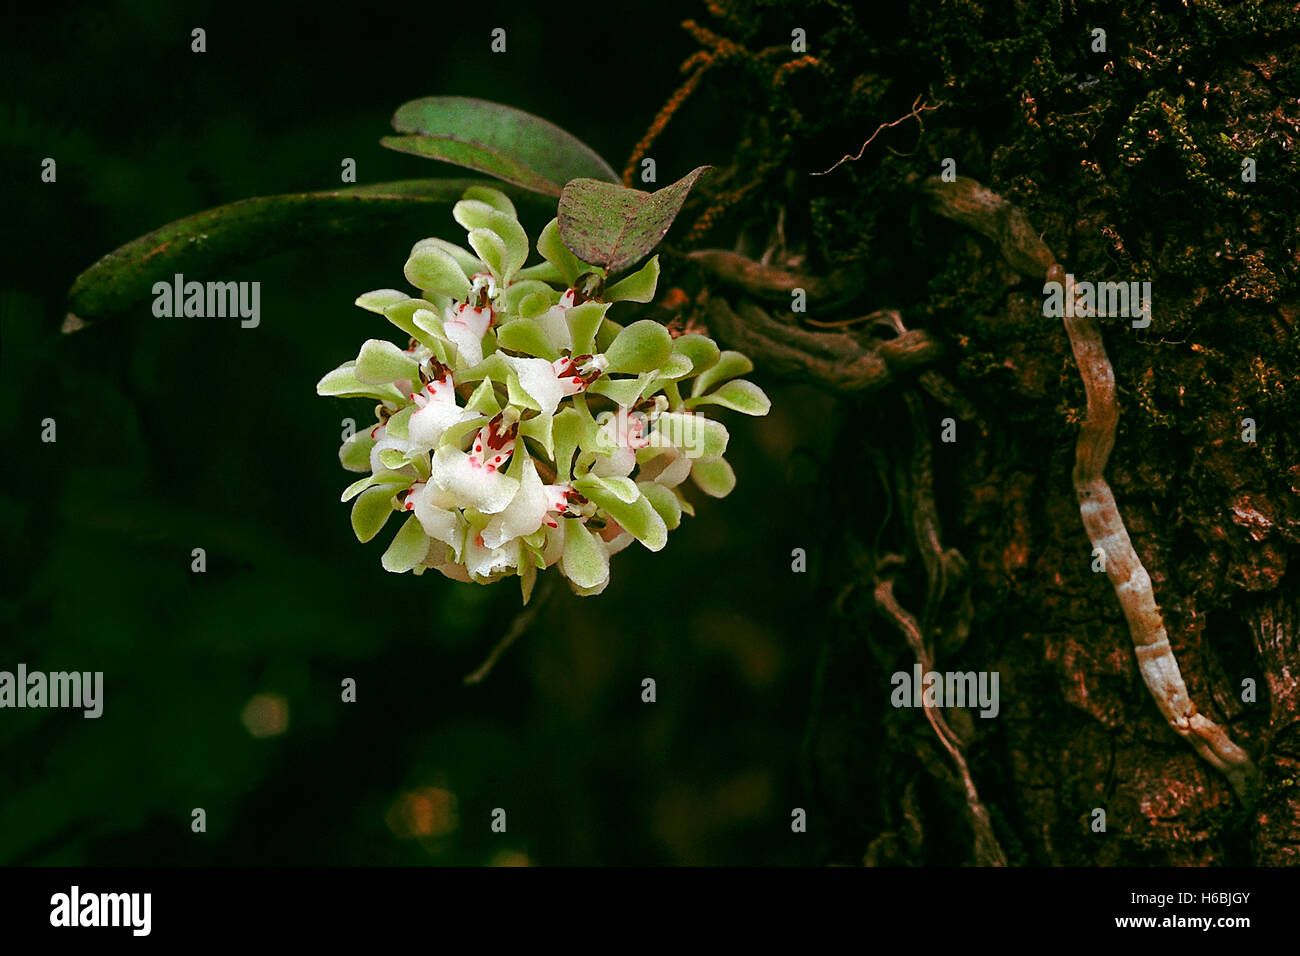 Aerides Dalzelliana. Family: Orchidaceae. A small epiphytic orchid found in the Western Ghats, India. - Stock Image